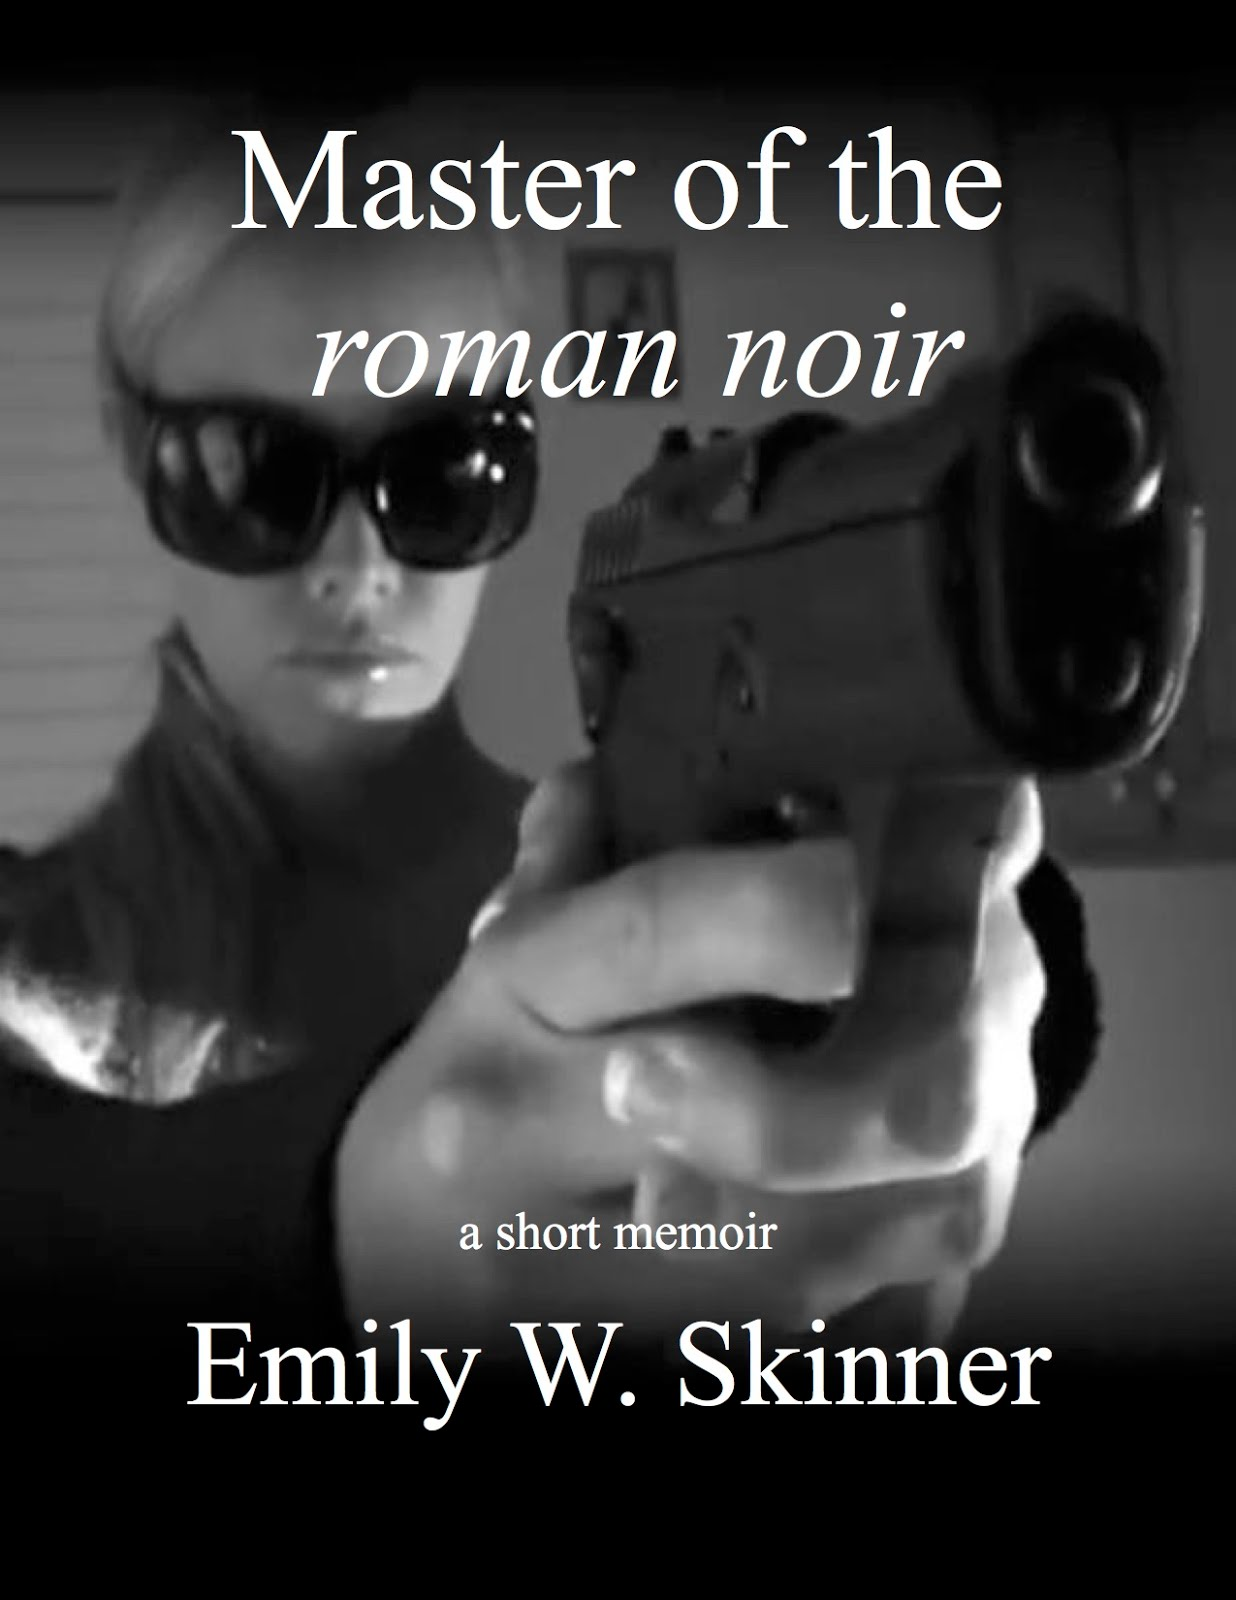 Master of the roman noir